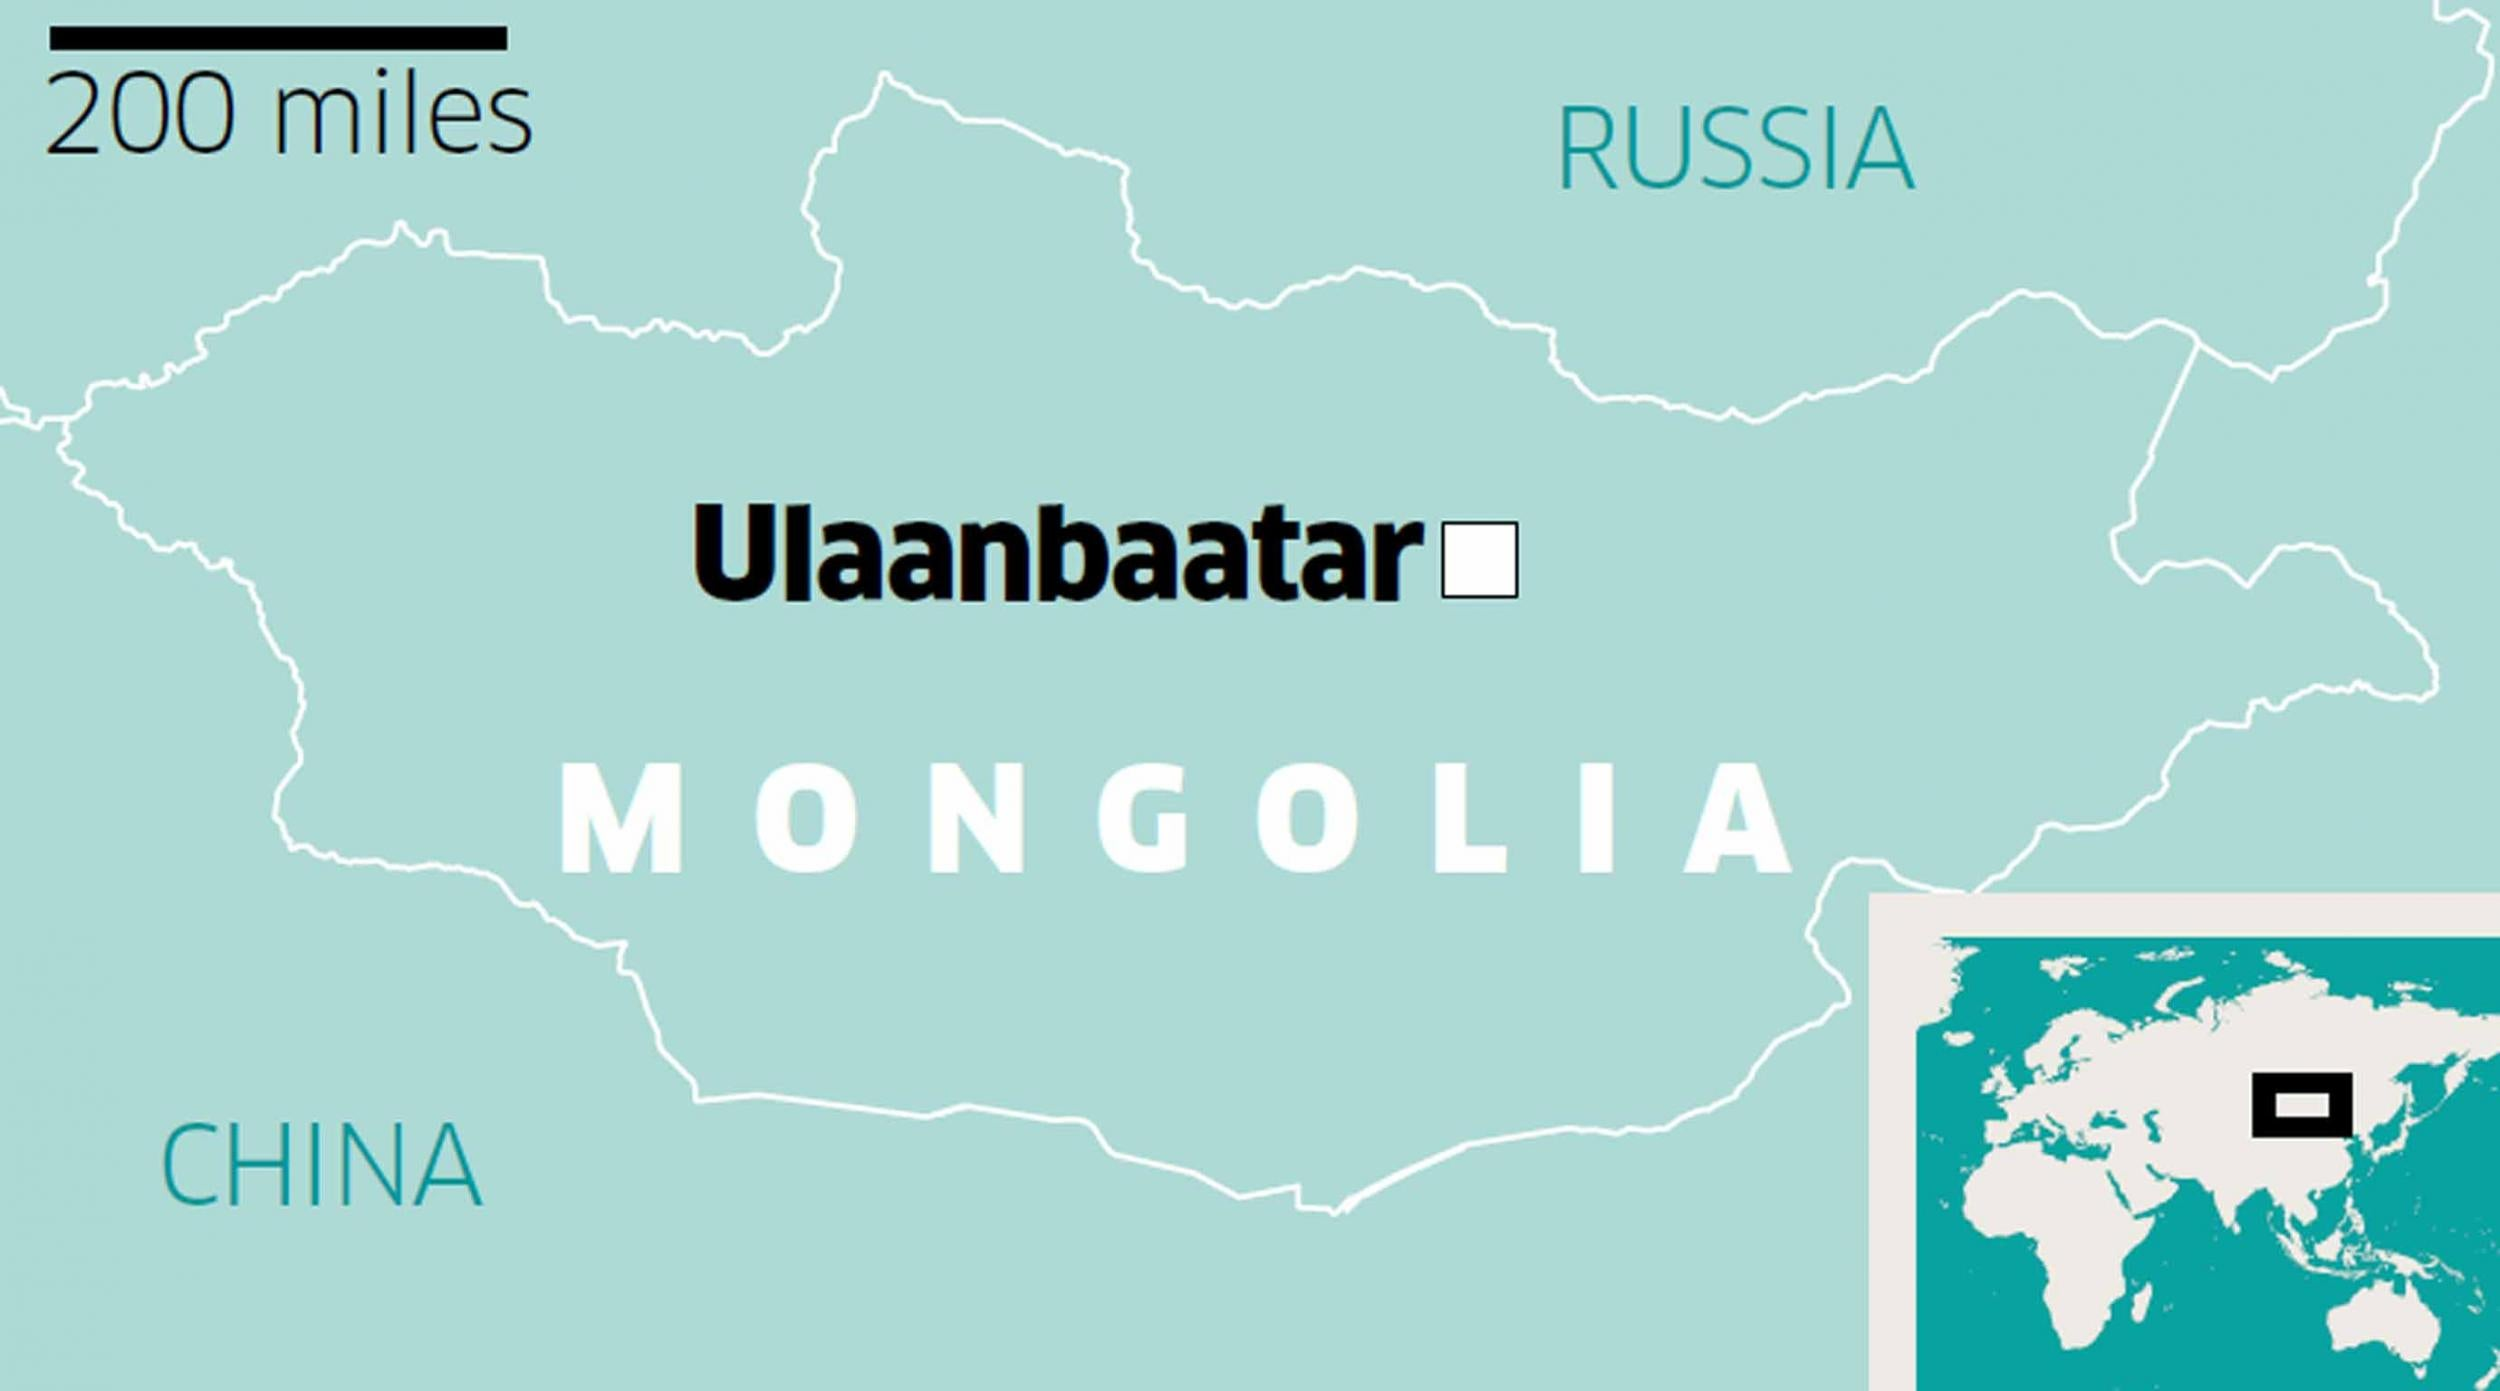 Mongolia by camel: On the hoof in the Gobi Desert | The Independent